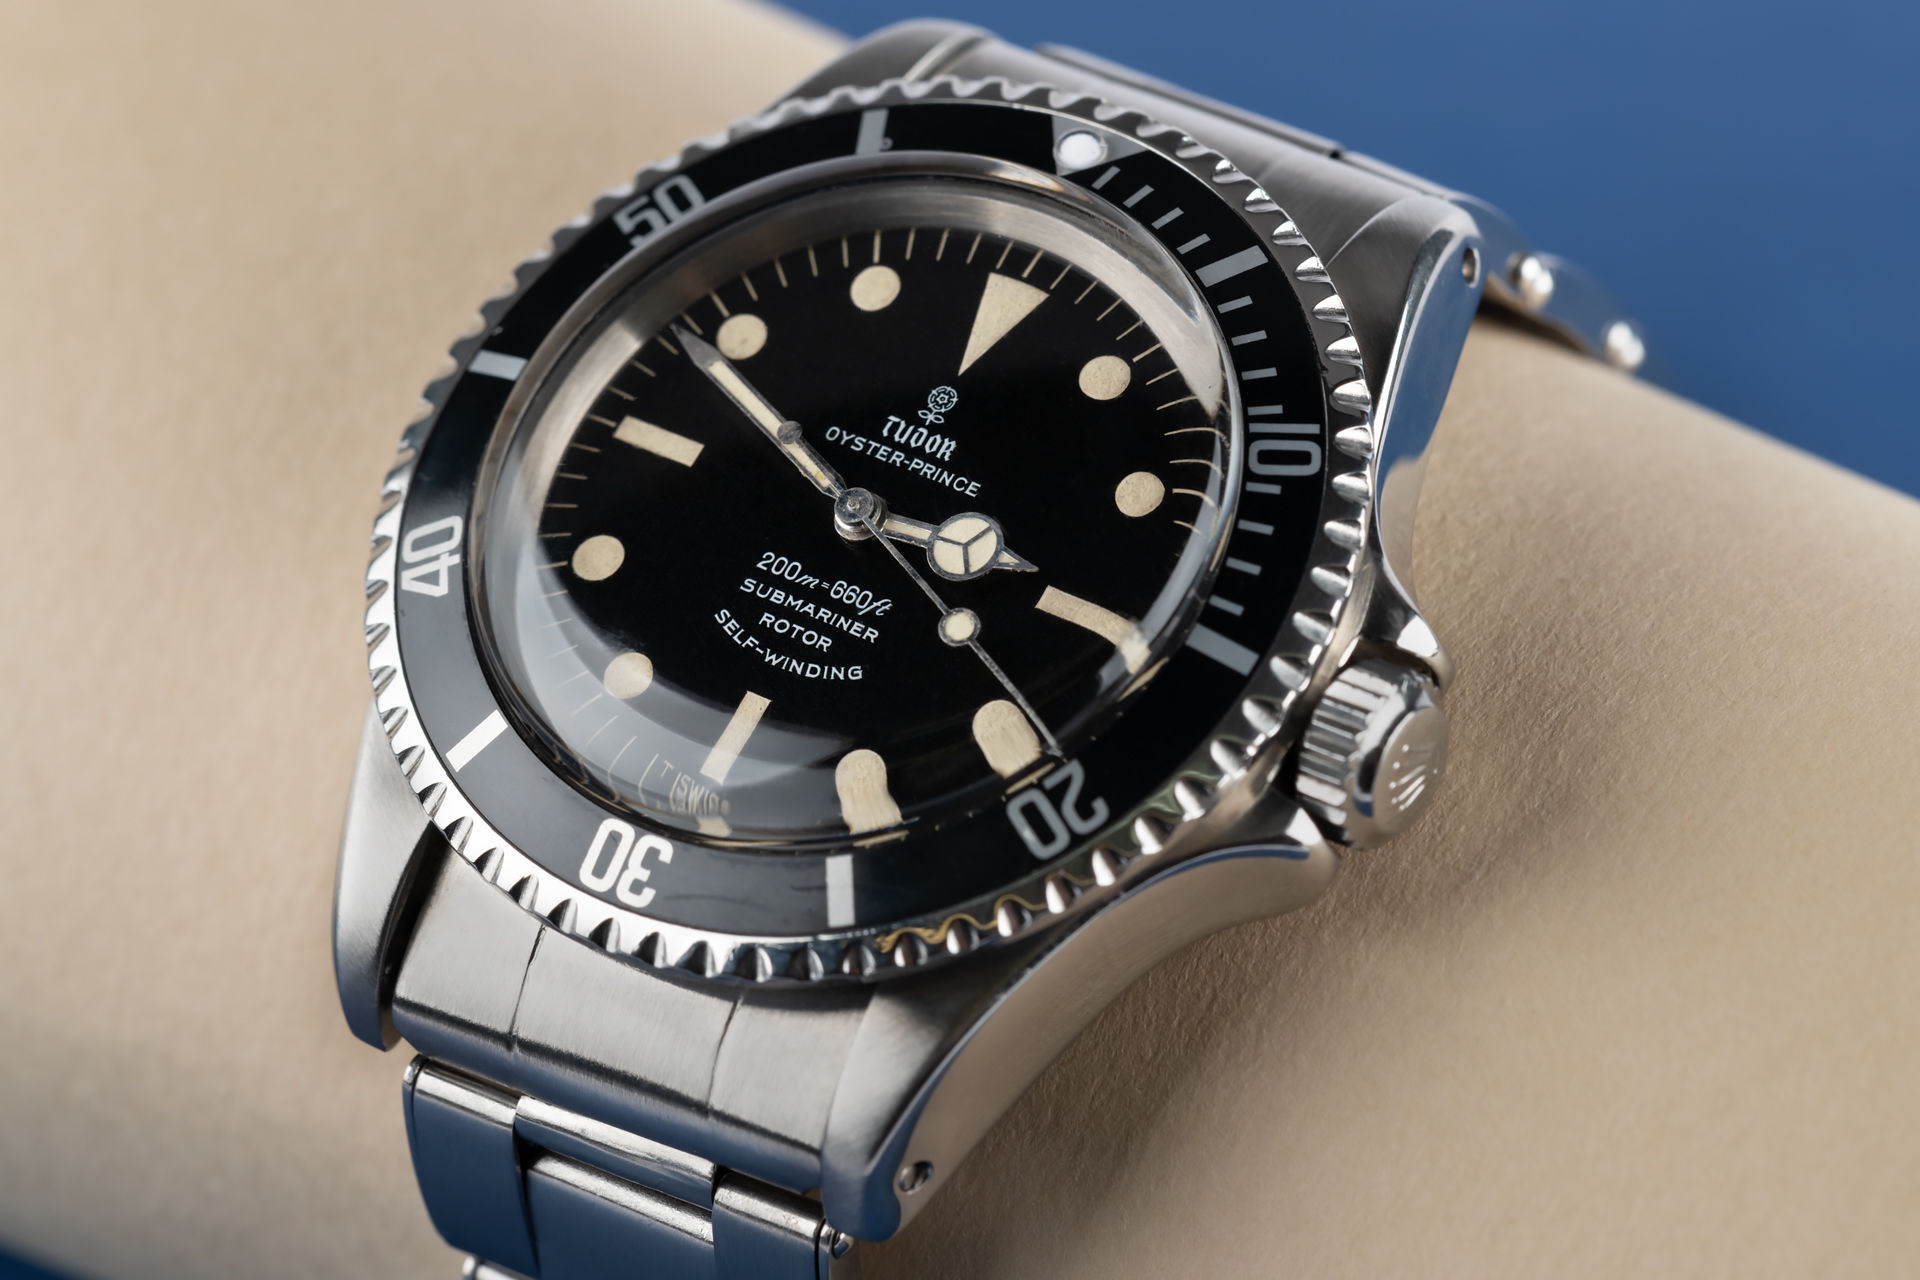 ref 7928/0 | 'Open Track' One Year Only | Tudor Submariner